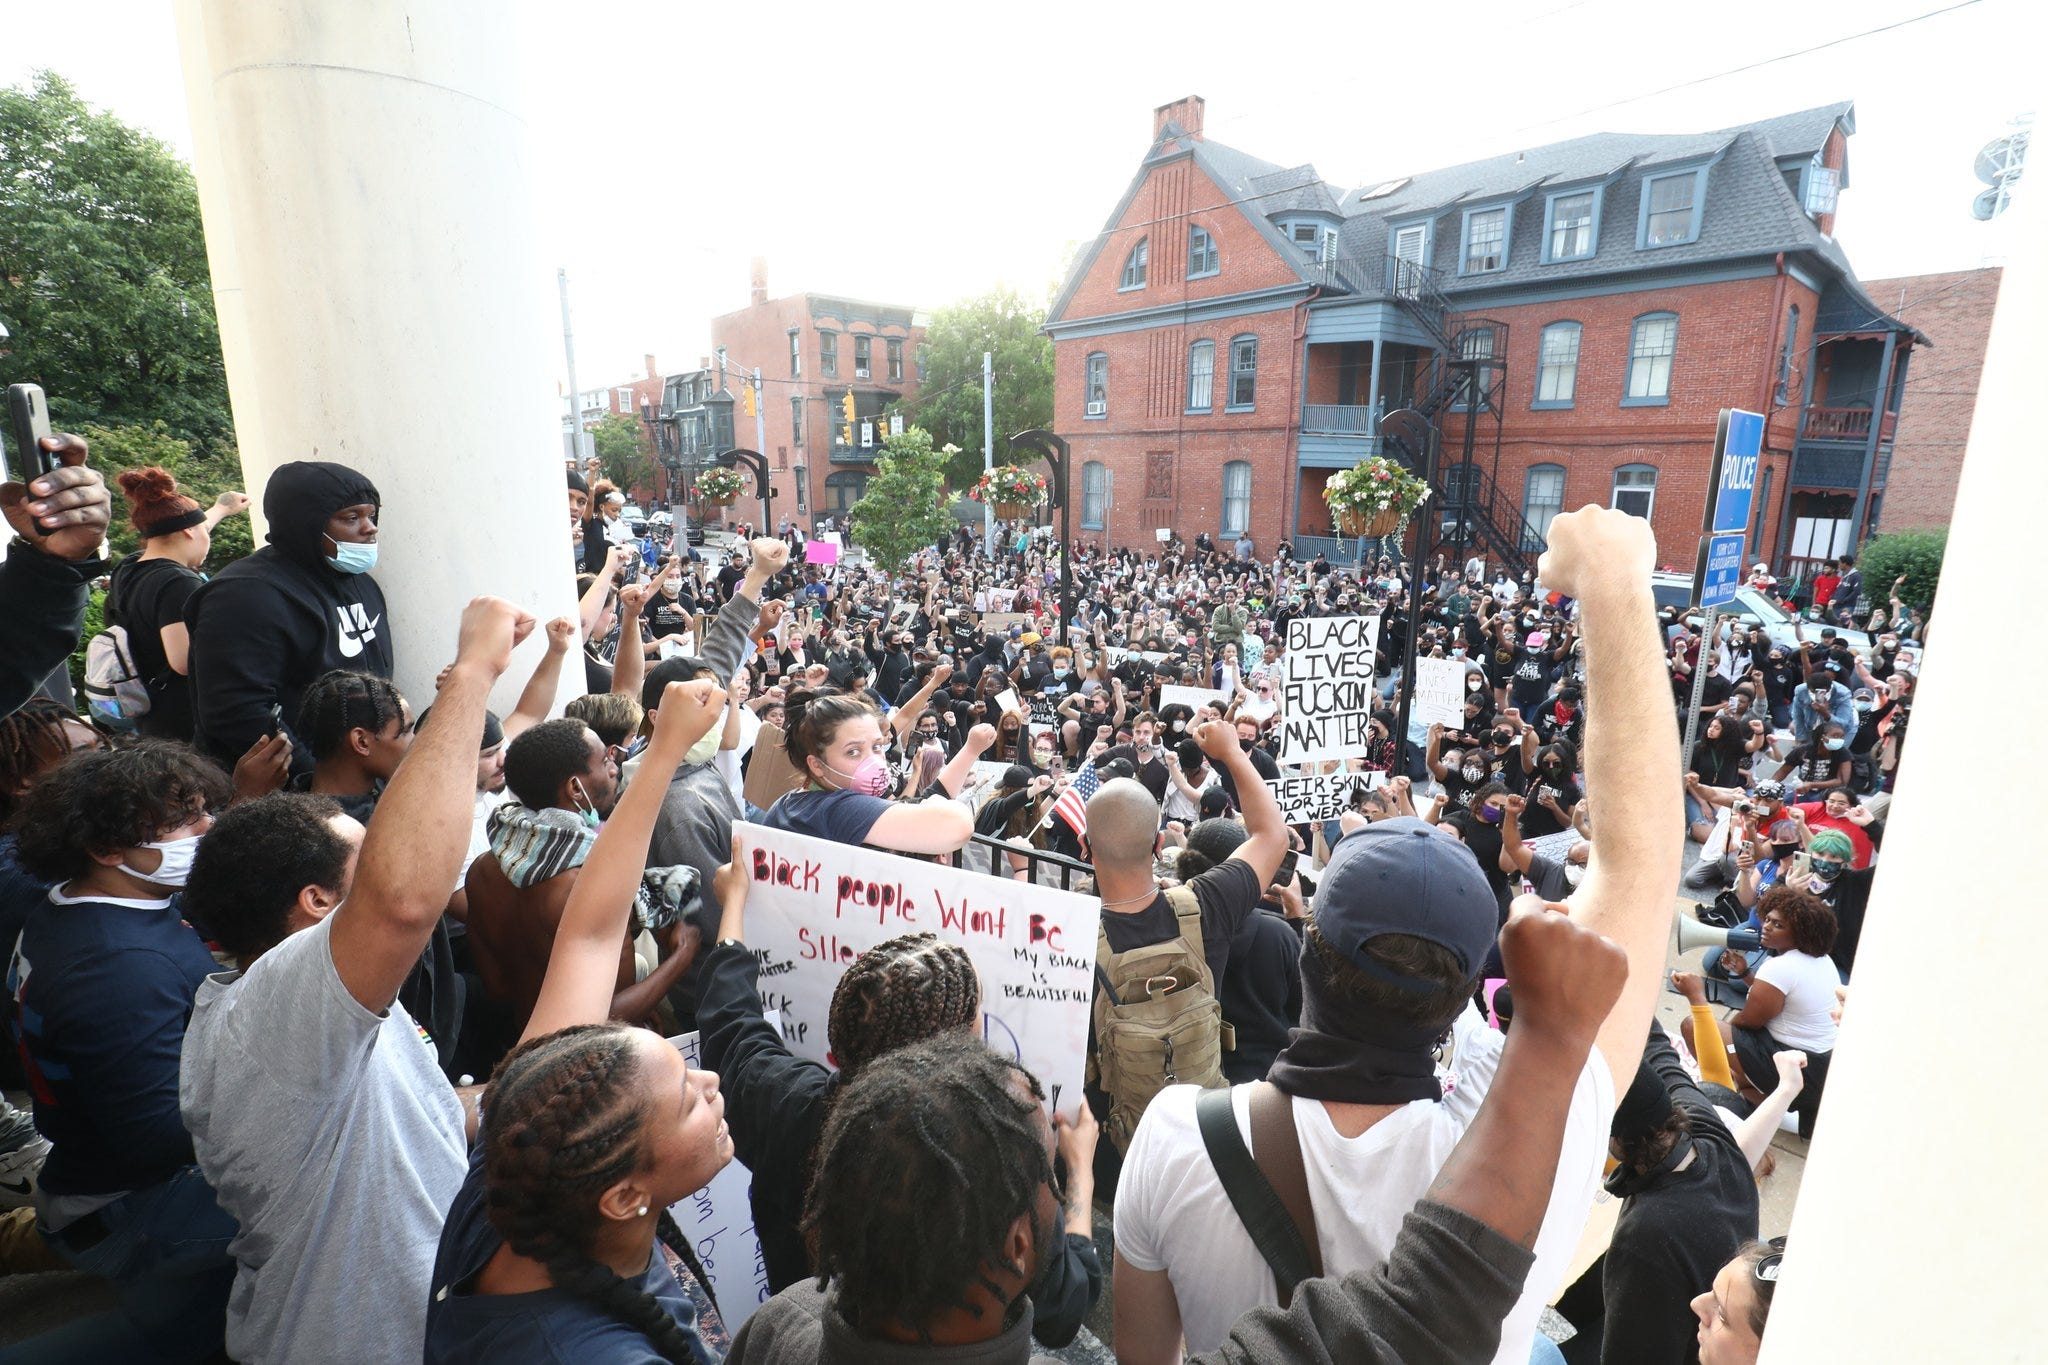 Protesters took to the streets of York for the second consecutive day on Tuesday, as emotions continued to boil over the death of George Floyd in Minneapolis earlier in the week and the state of policing in America.